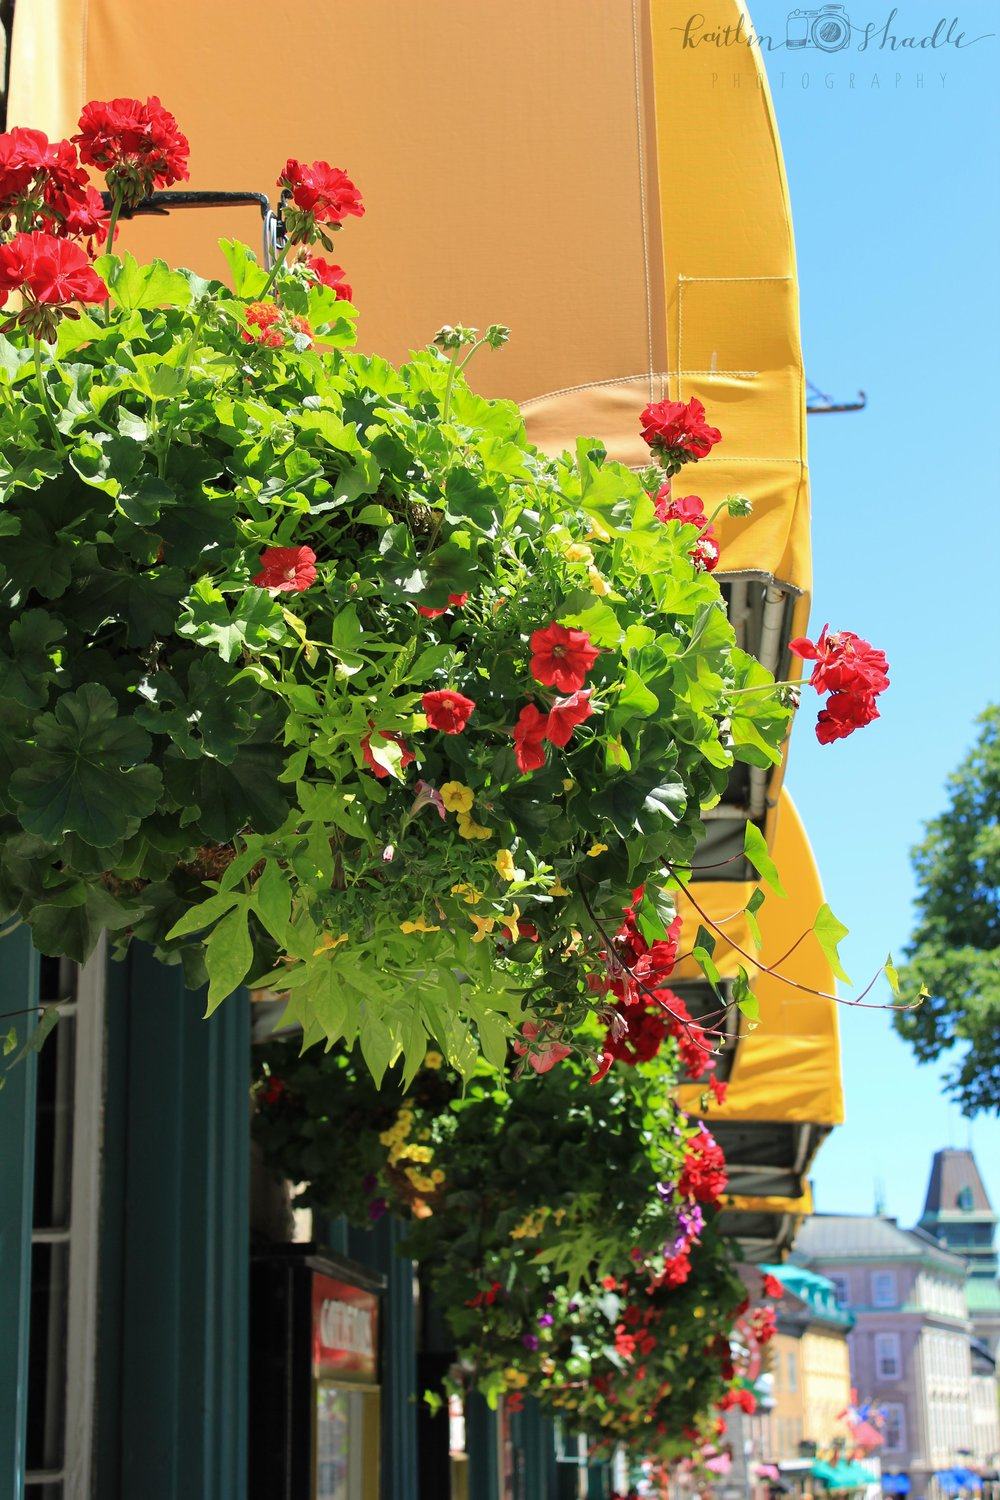 Yellow Awnings in Quebec City